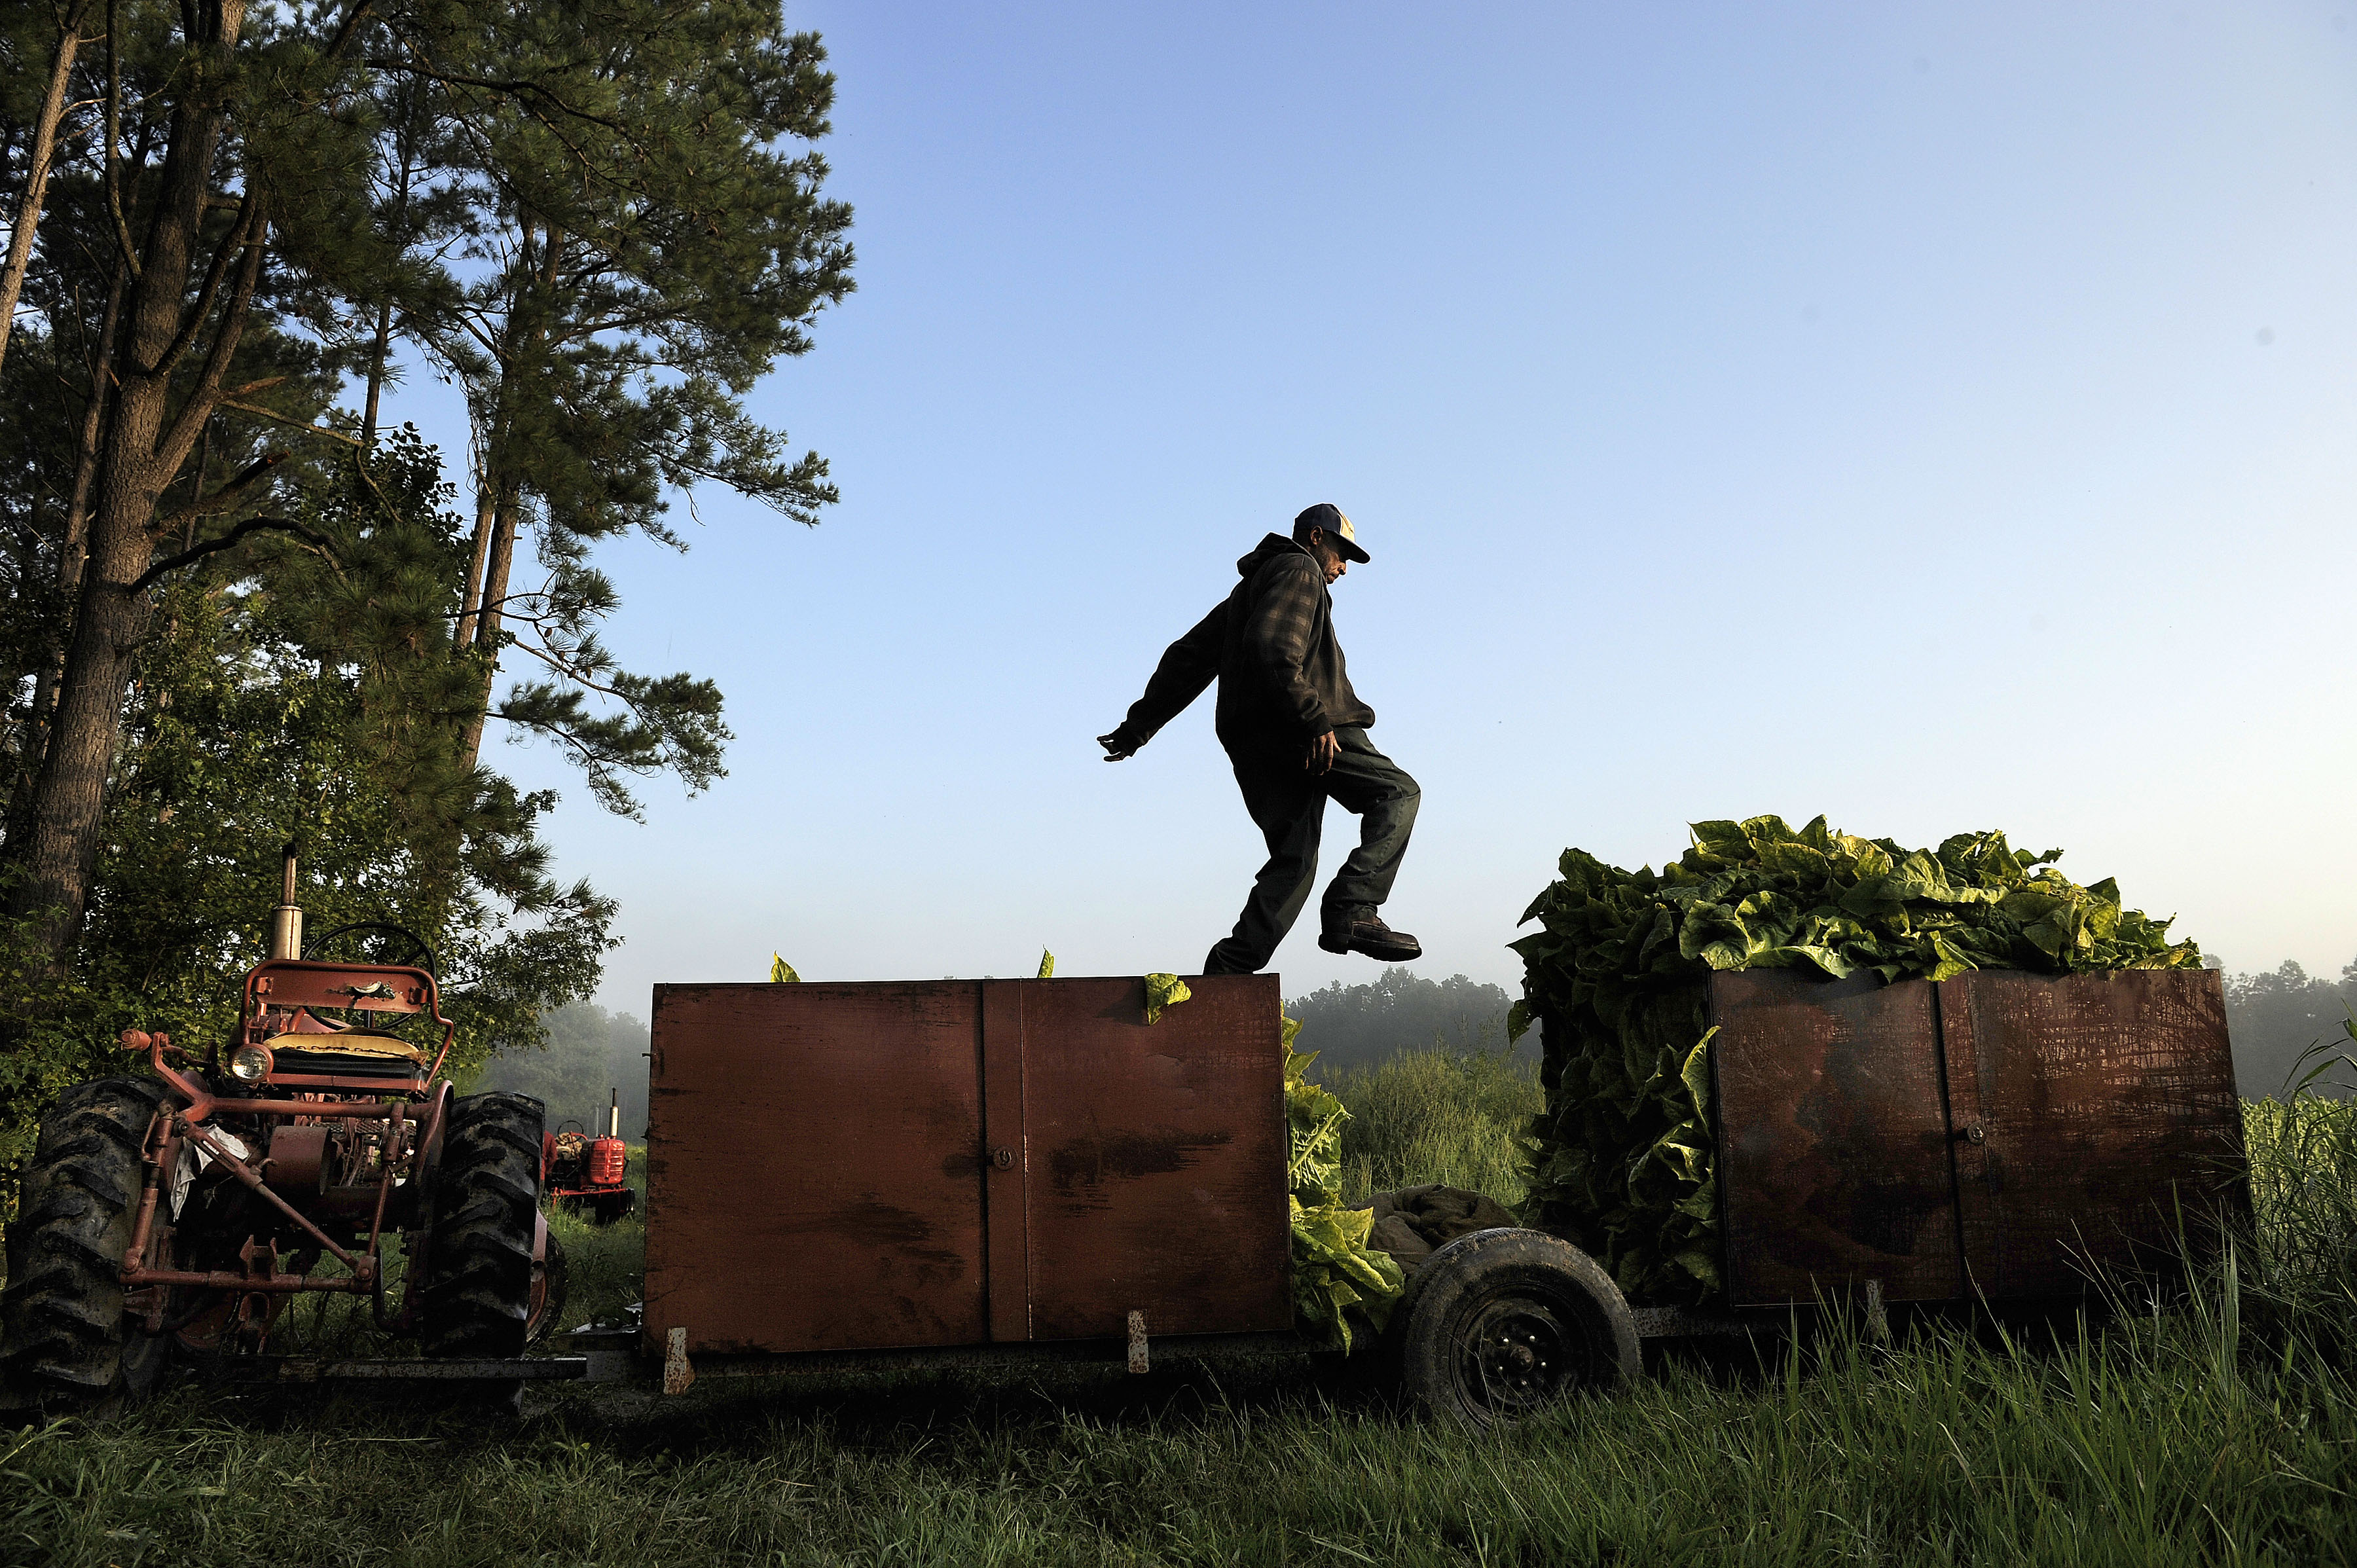 Tobacco farmer in Warfield, Va., on Aug. 30, 2013